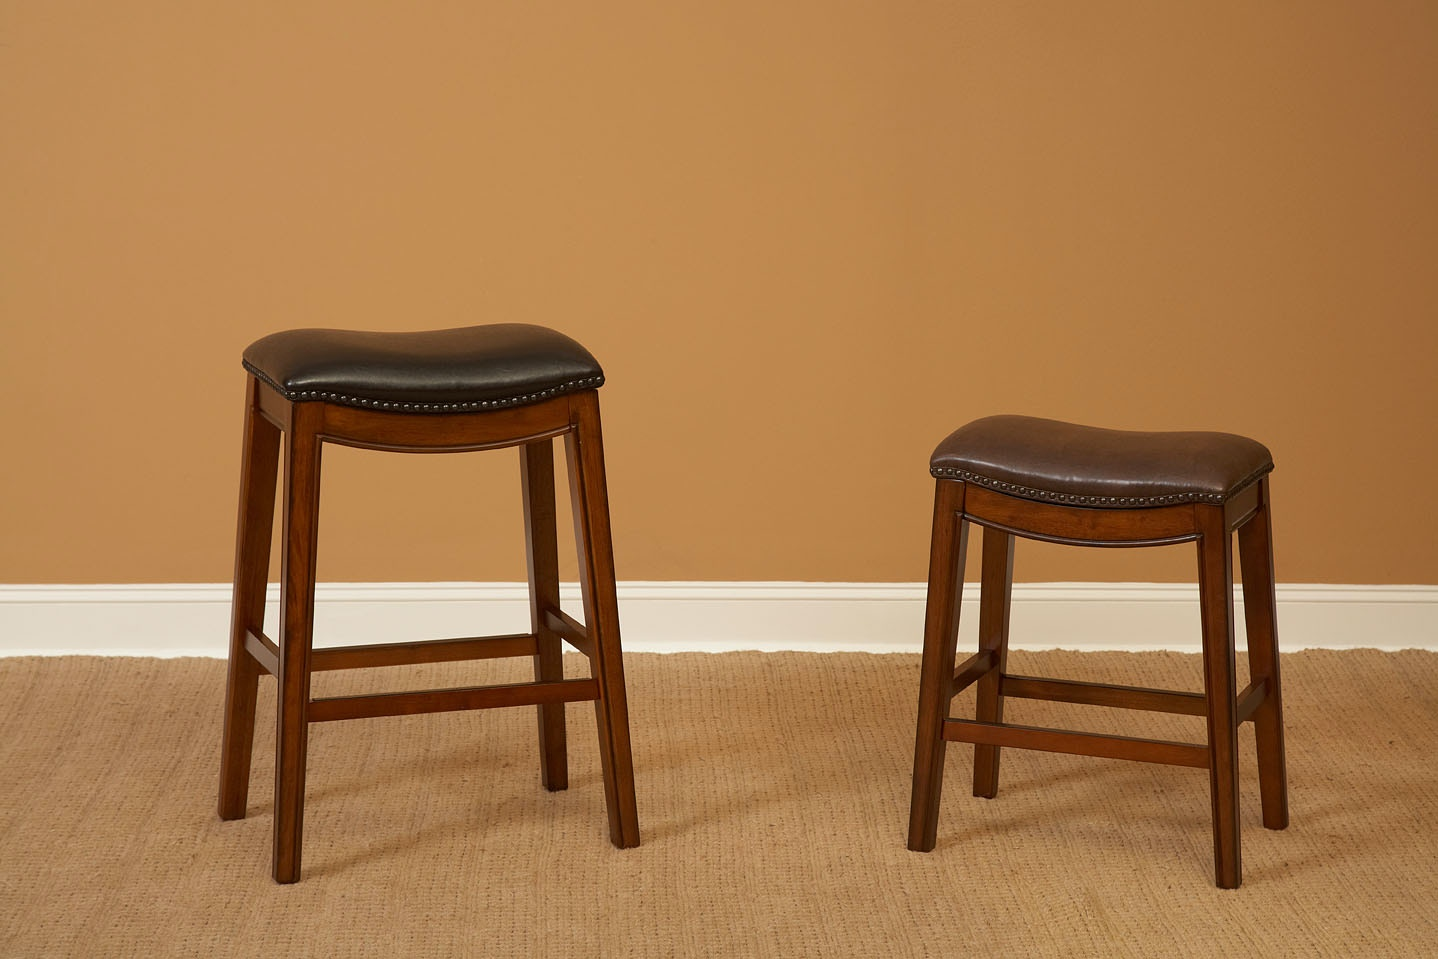 Largo International Bar and Game Room 24 Counter Stool  : d322 22l 2  from www.bosticsugg.com size 1024 x 768 jpeg 53kB